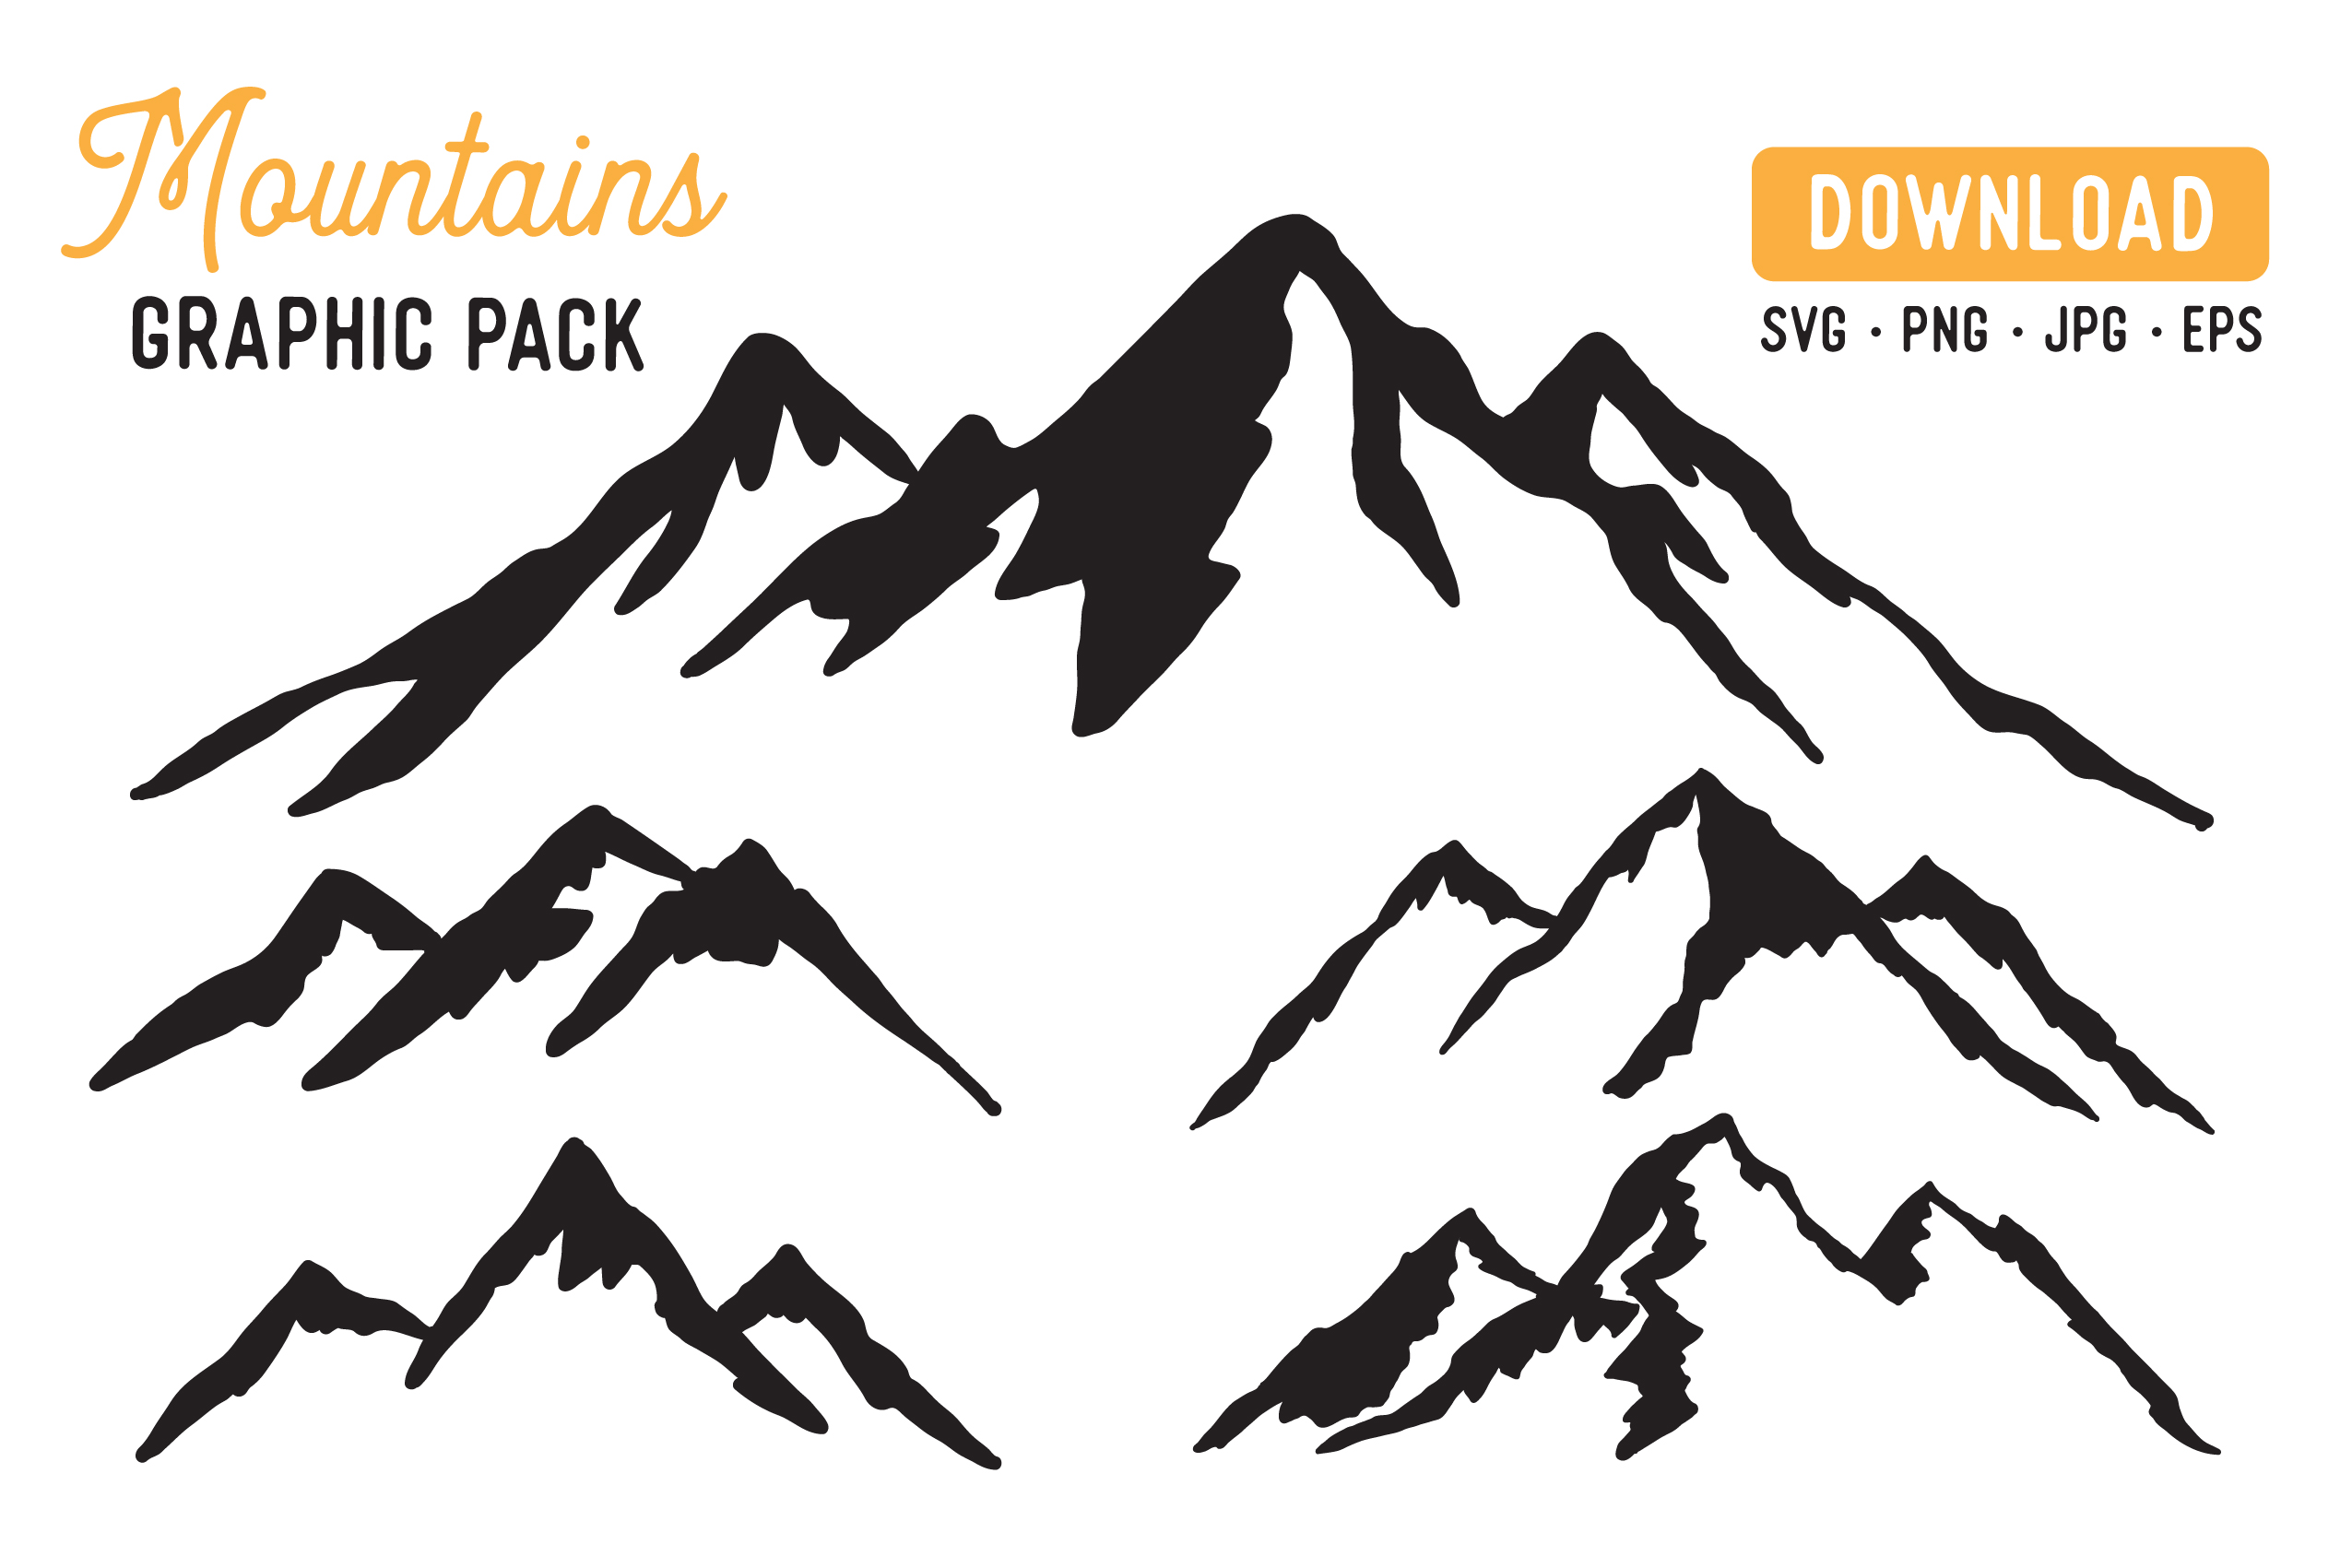 Download Free Mountain Vector Graphic By The Gradient Fox Creative Fabrica for Cricut Explore, Silhouette and other cutting machines.